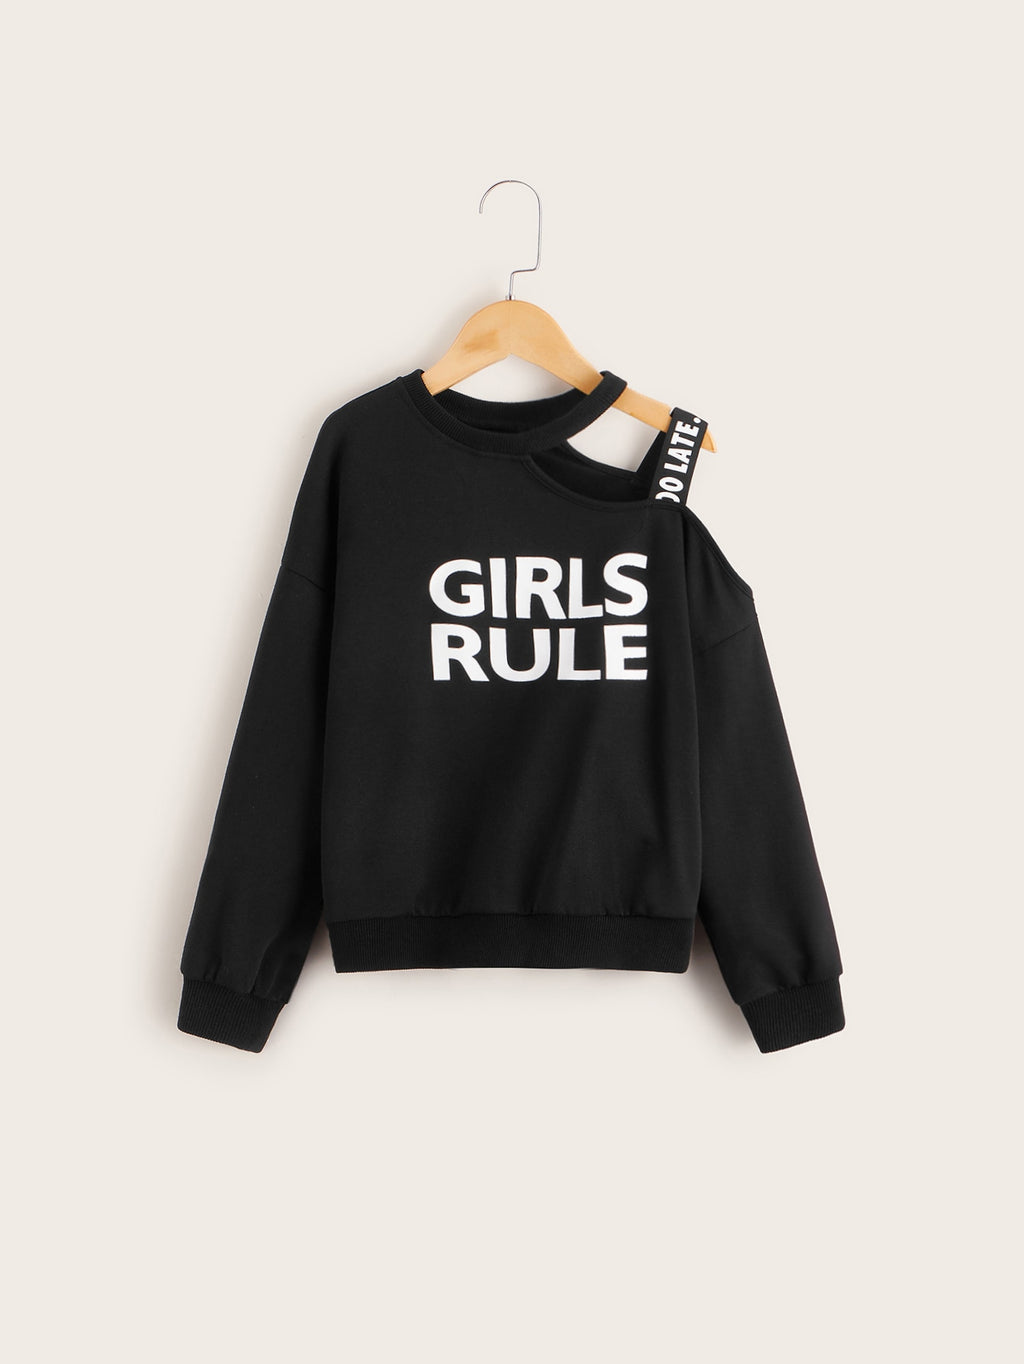 Girls Slogan Graphic Cold One Shoulder Pullover With Strap